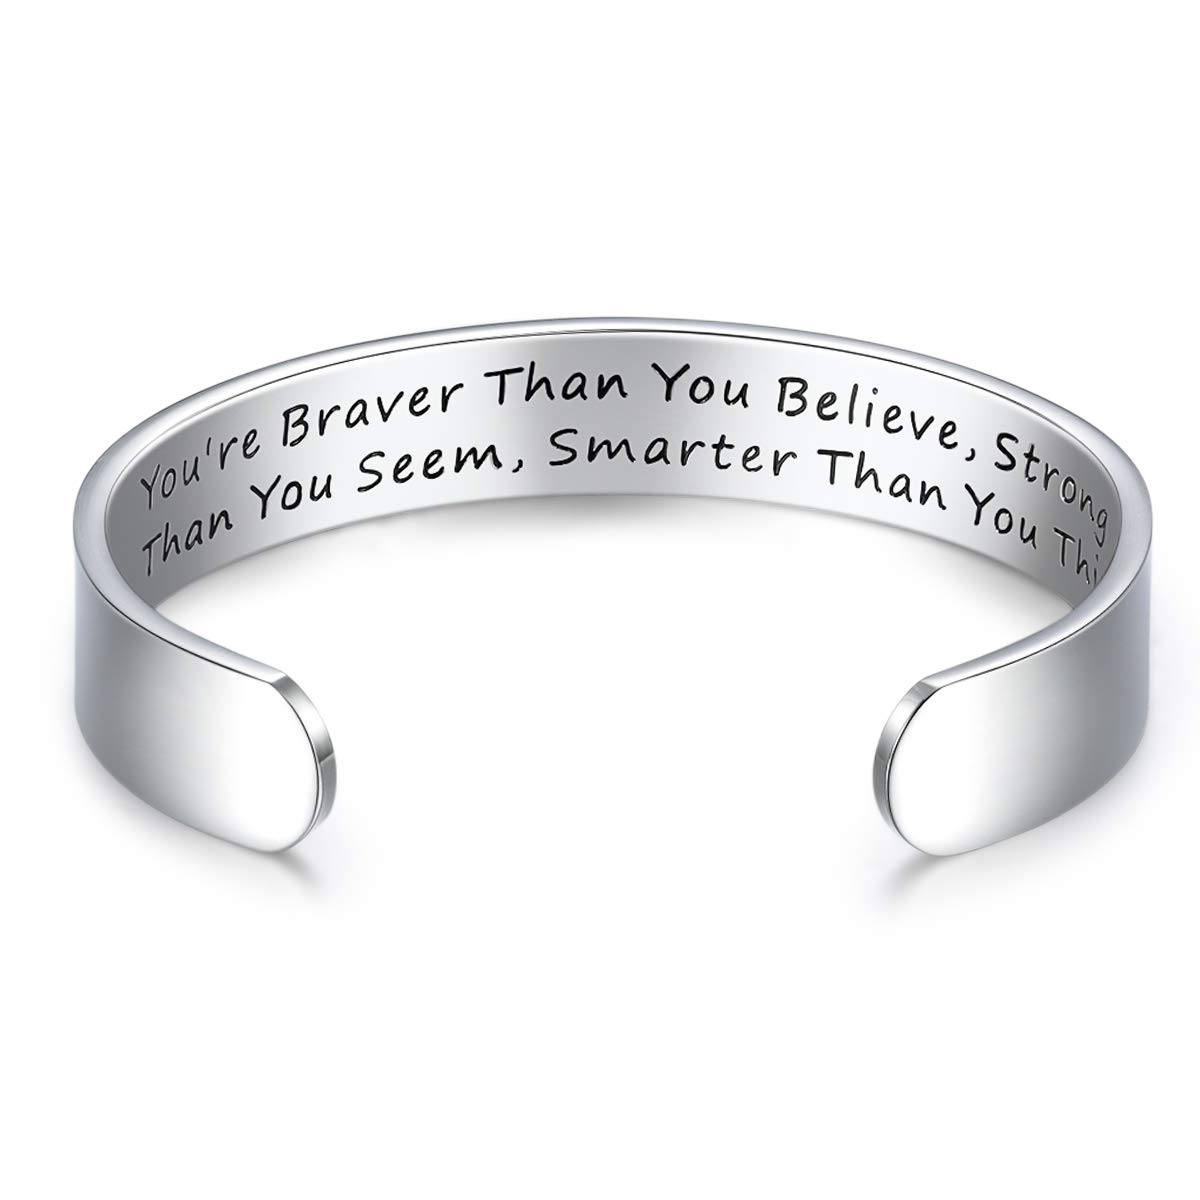 a4782591bea CERSLIMO Bracelets Inspirational Gifts for Women,Stainless Steel  Personalized Engraved Positive Quote Keep Going Bracelets Cuff Bangle  Motivational ...